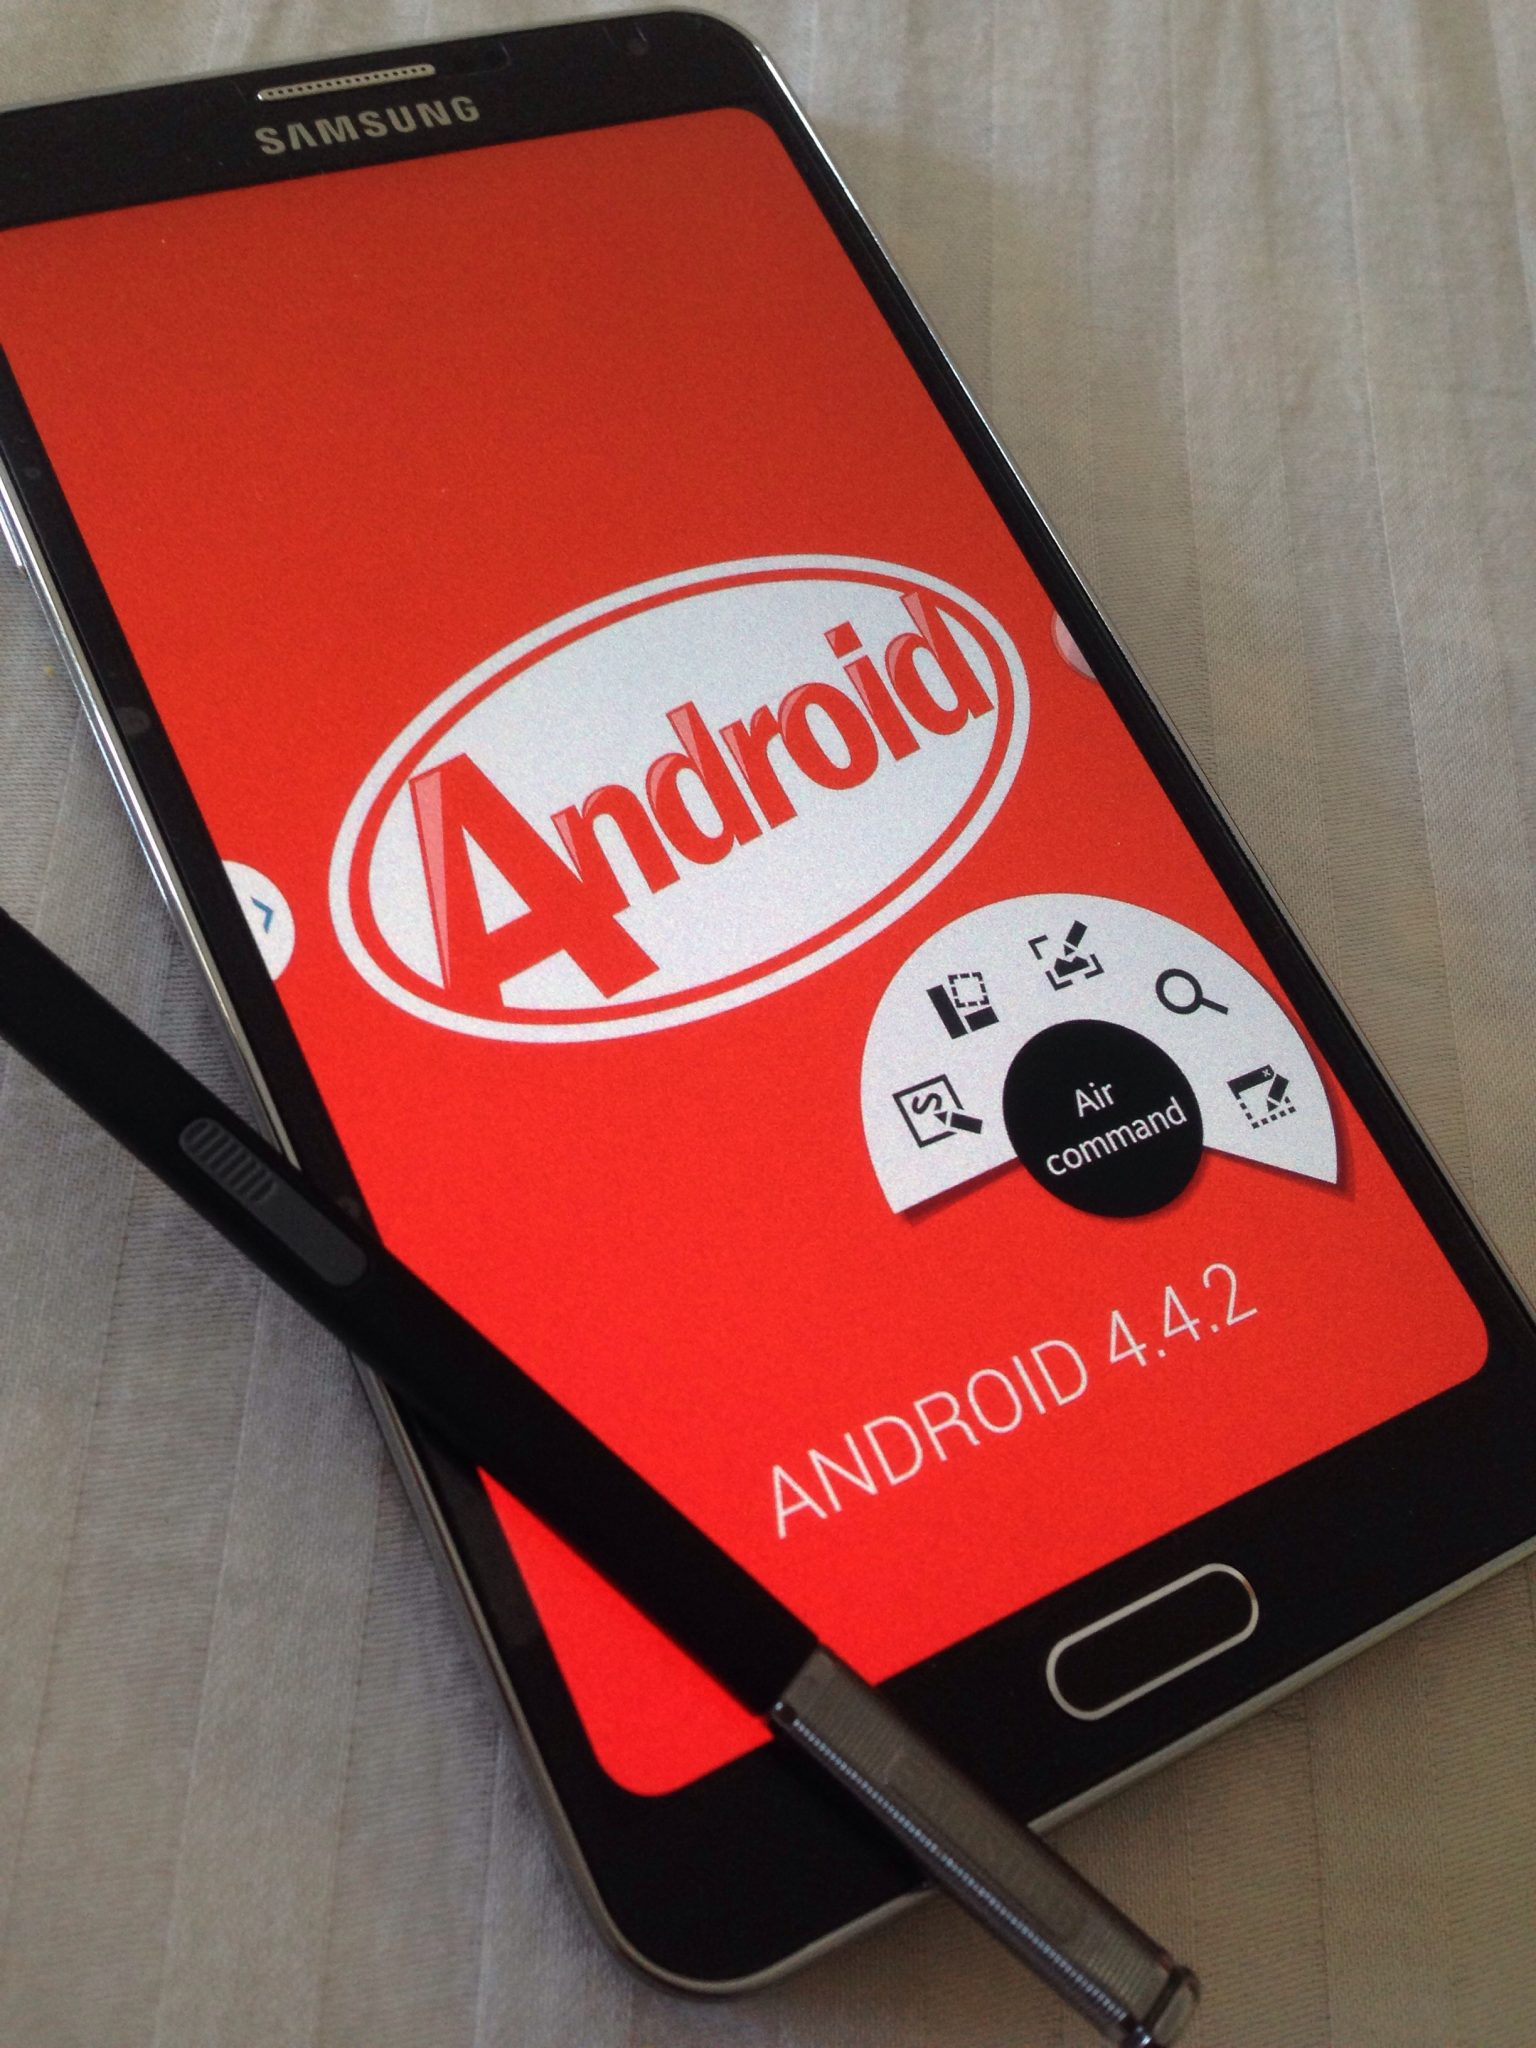 20140114 104222 - HOW TO : Flash the Official Android 4.4 Kitkat Firmware on to the Galaxy Note 3